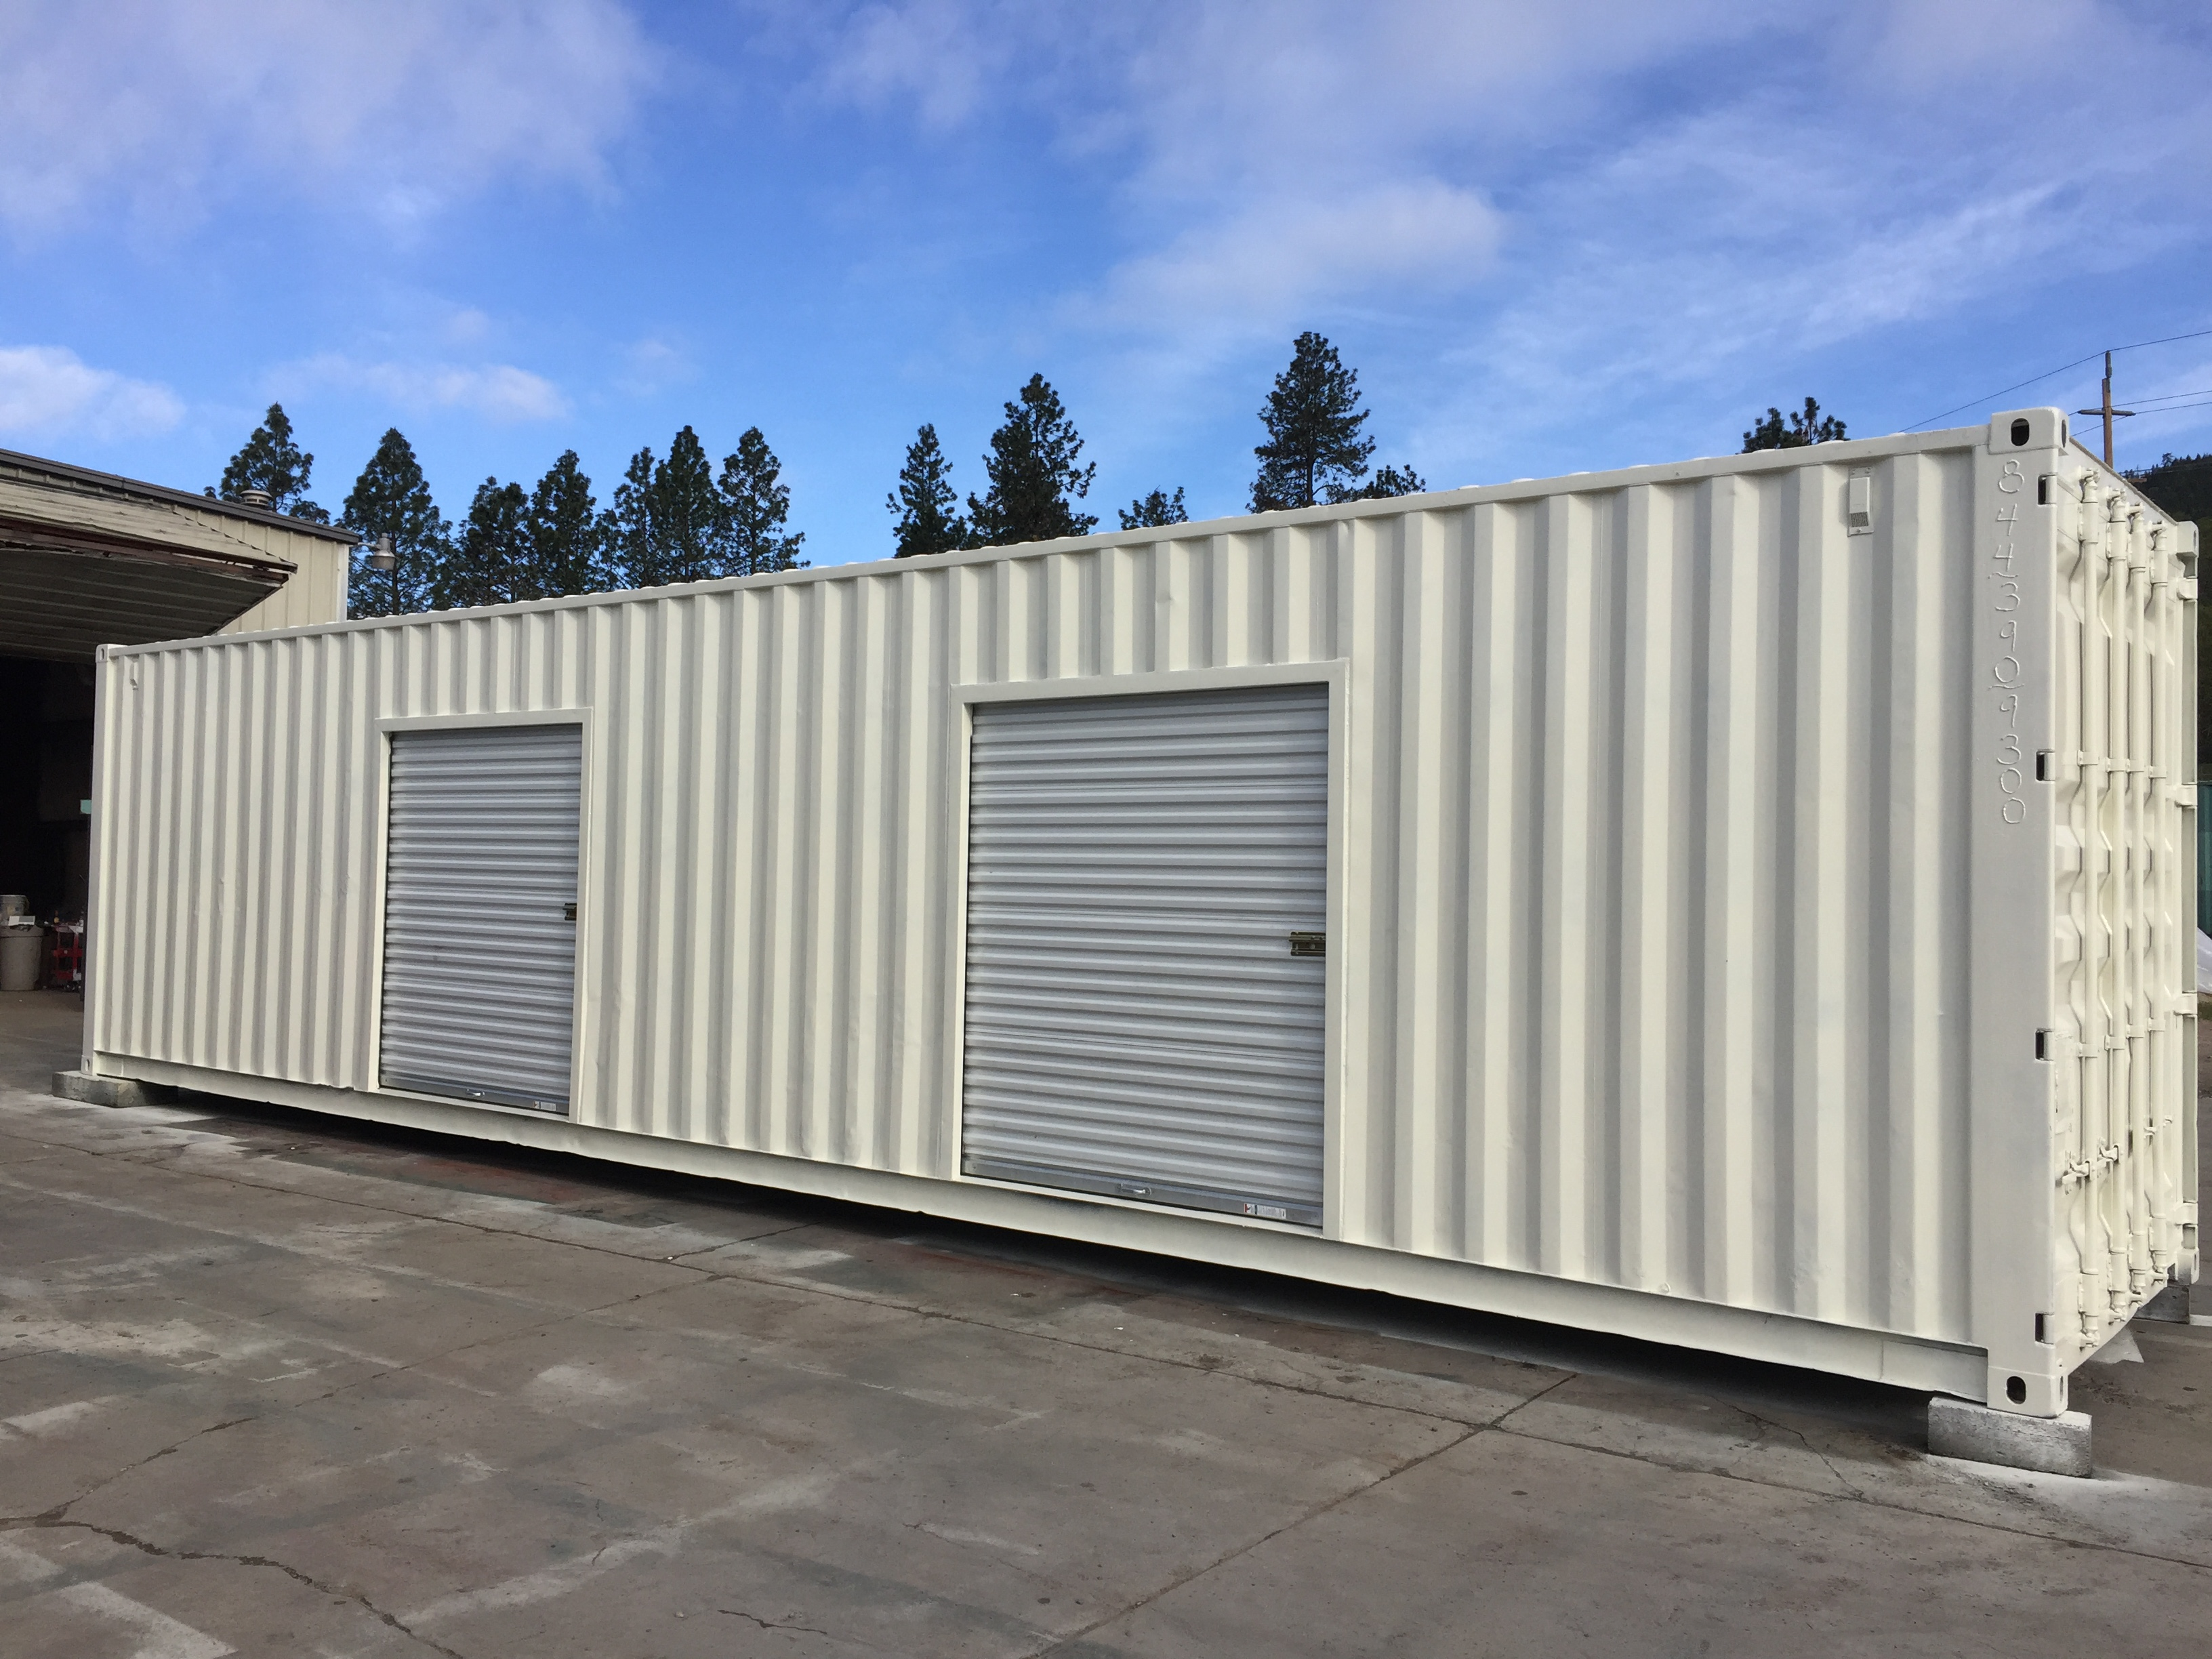 40 ft container grow room facility oregon cargo containers inc 844 3909300 sale rent modify every day storage solutions